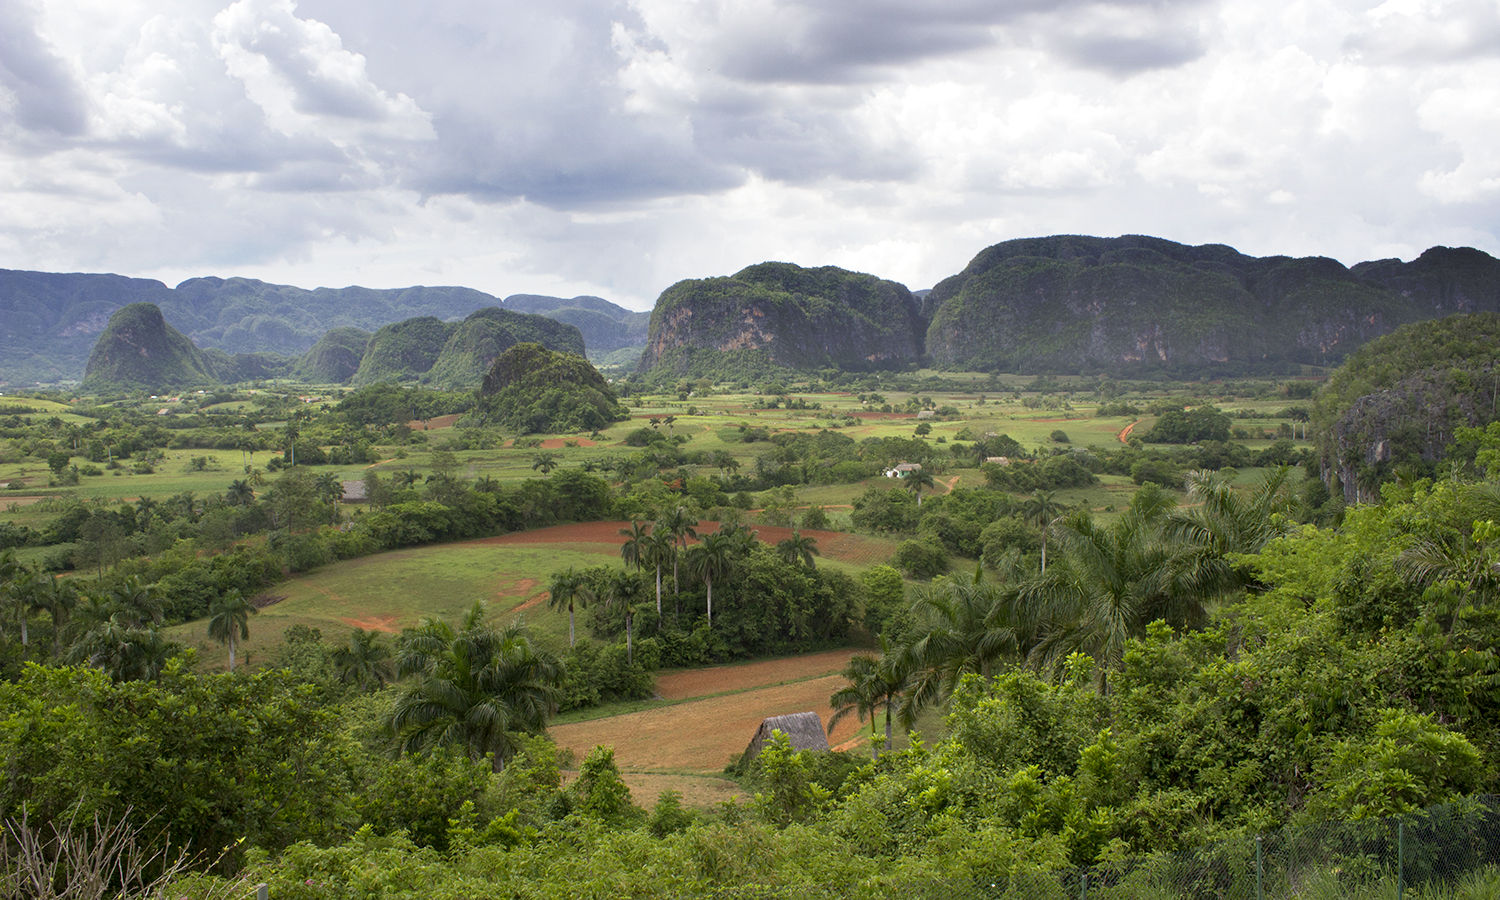 A picture of the beautiful mountains   surrounding the small town of Viñales in the province of Pinar del Rio, Cuba.